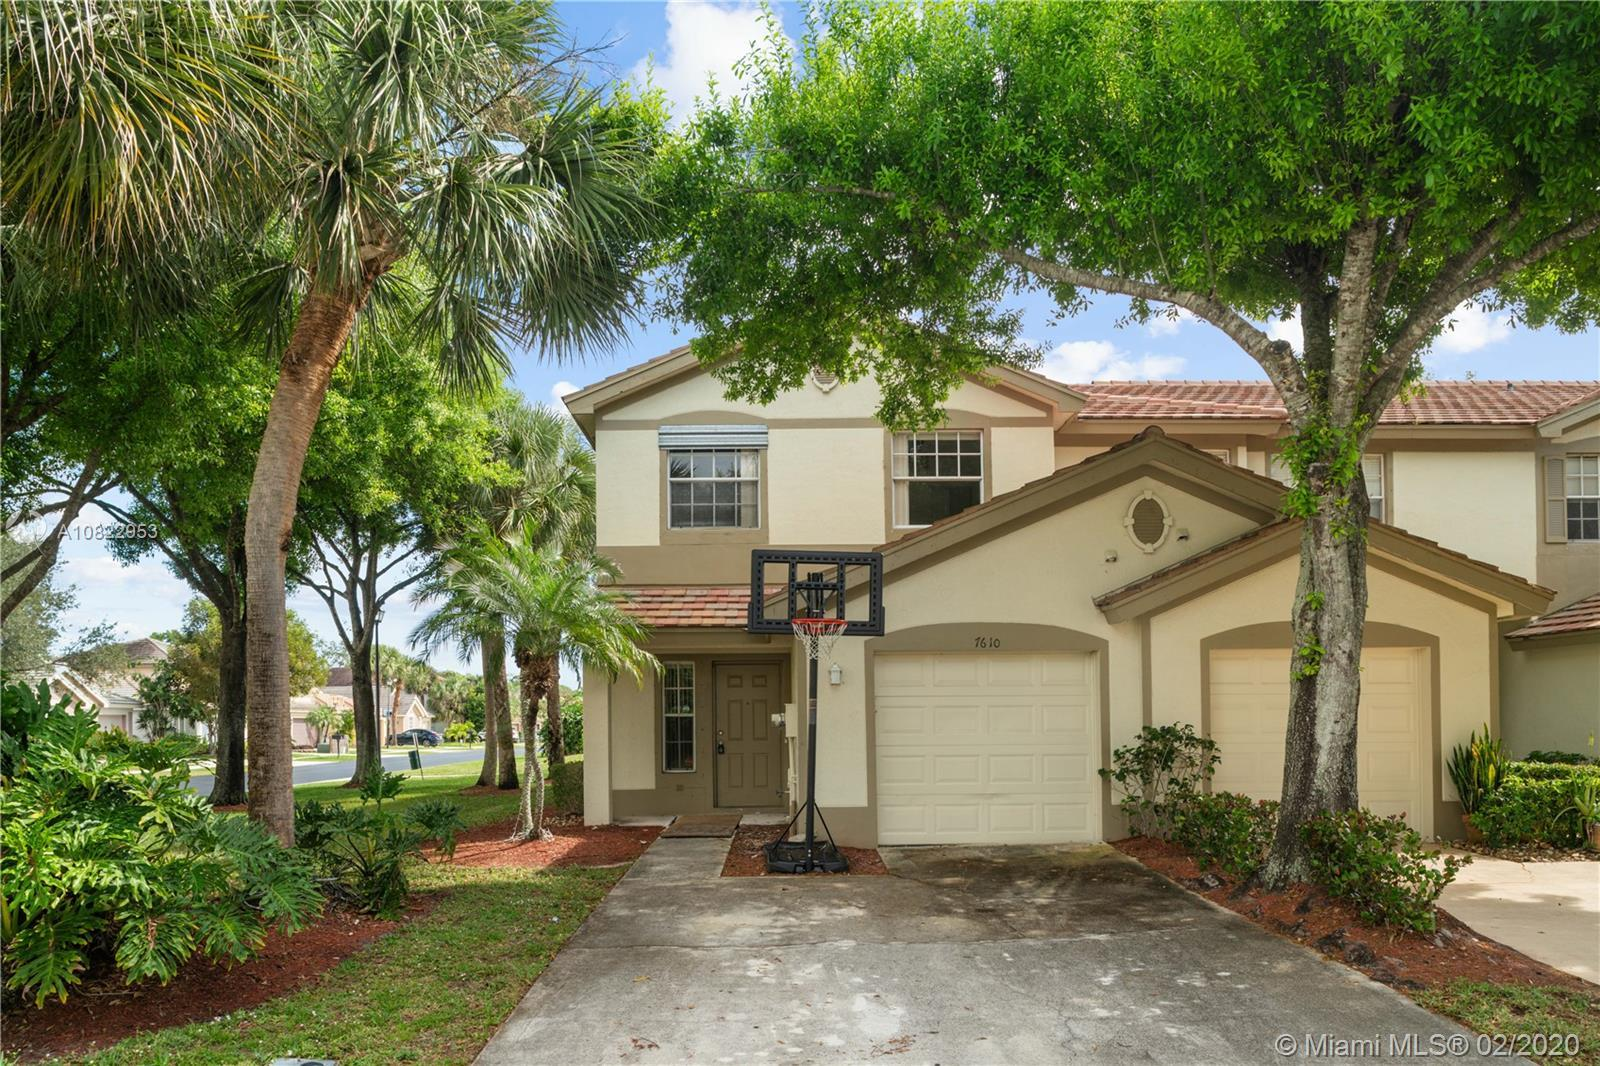 Great home in a wonderful gated community walking distance to schools. Freshly painted interior with